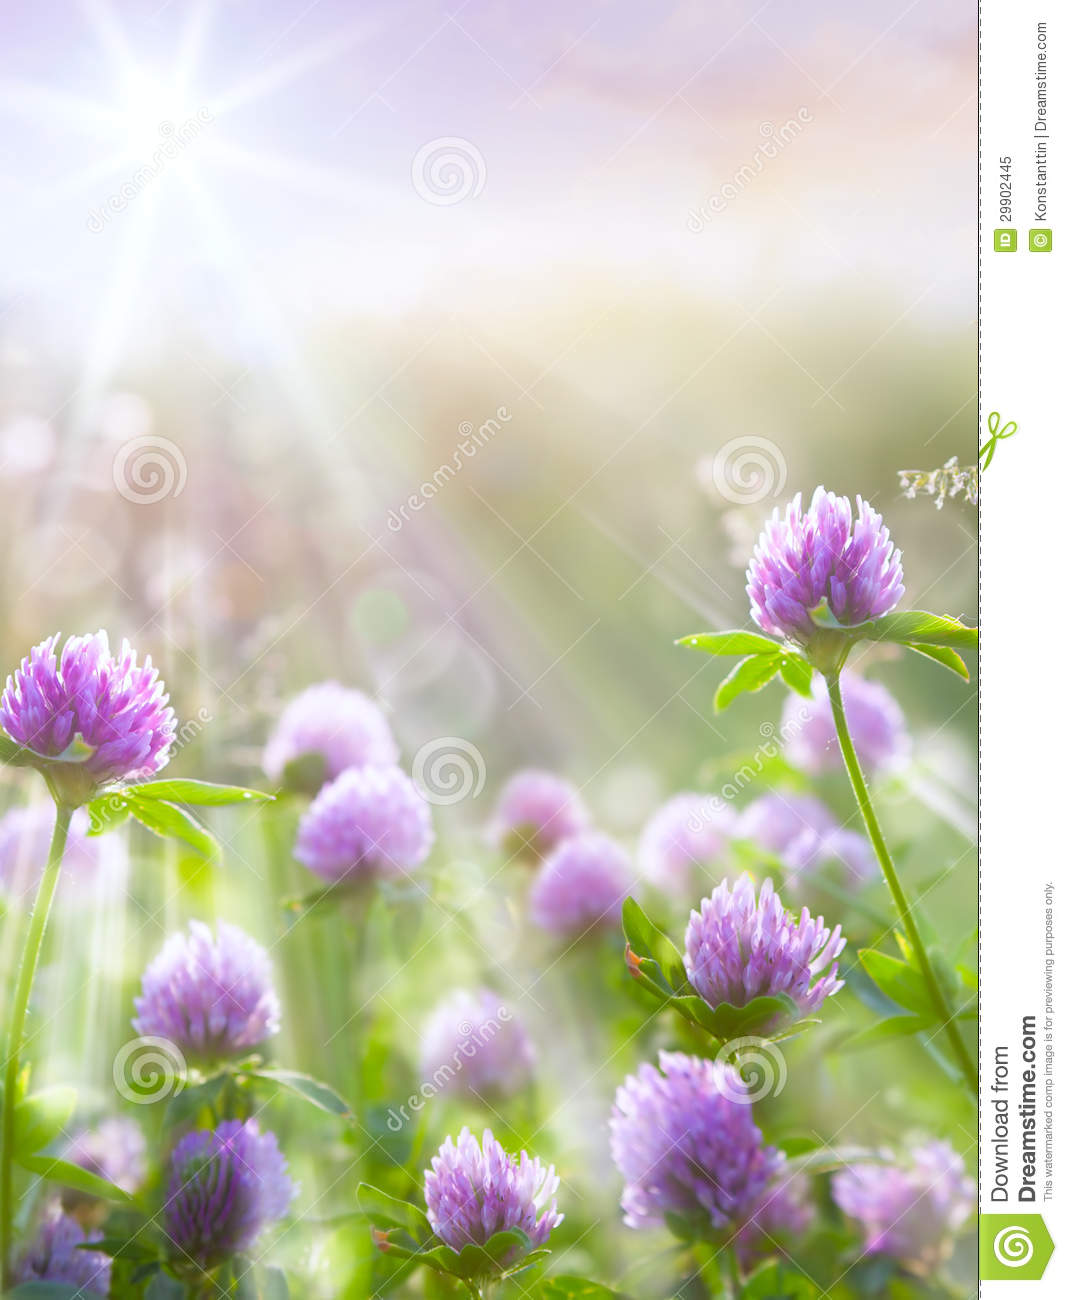 Nature Images 2mb: Art Spring Natural Background, Wild Clover Flowers Royalty